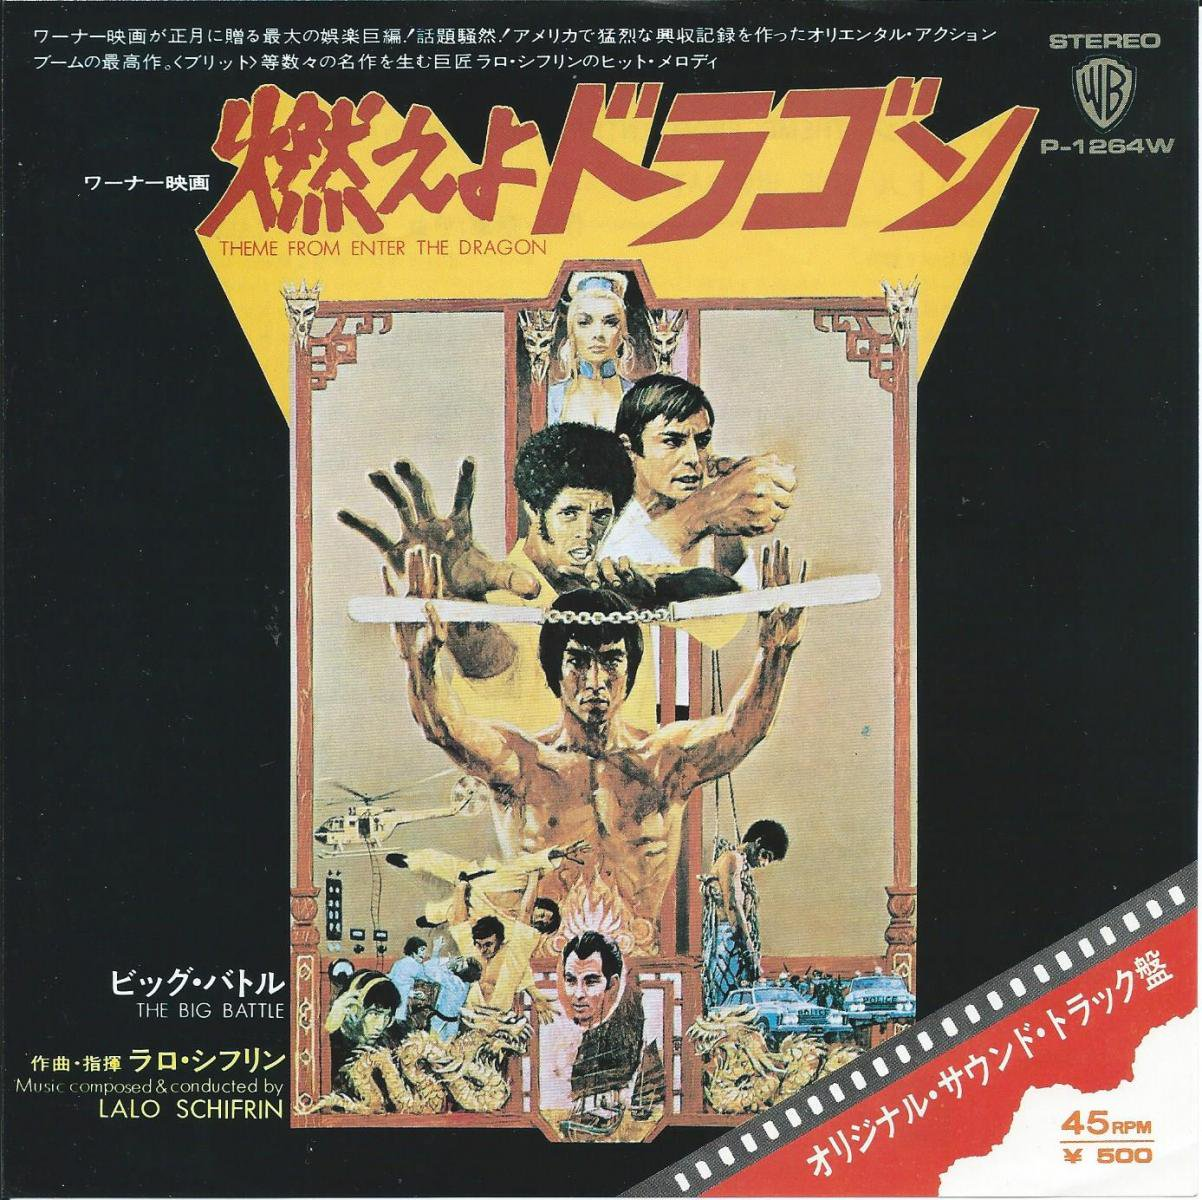 O.S.T. (LALO SCHIFRIN ラロ・シフリン) / THEME FROM ENTER THE DRAGON 燃えよドラゴン (7